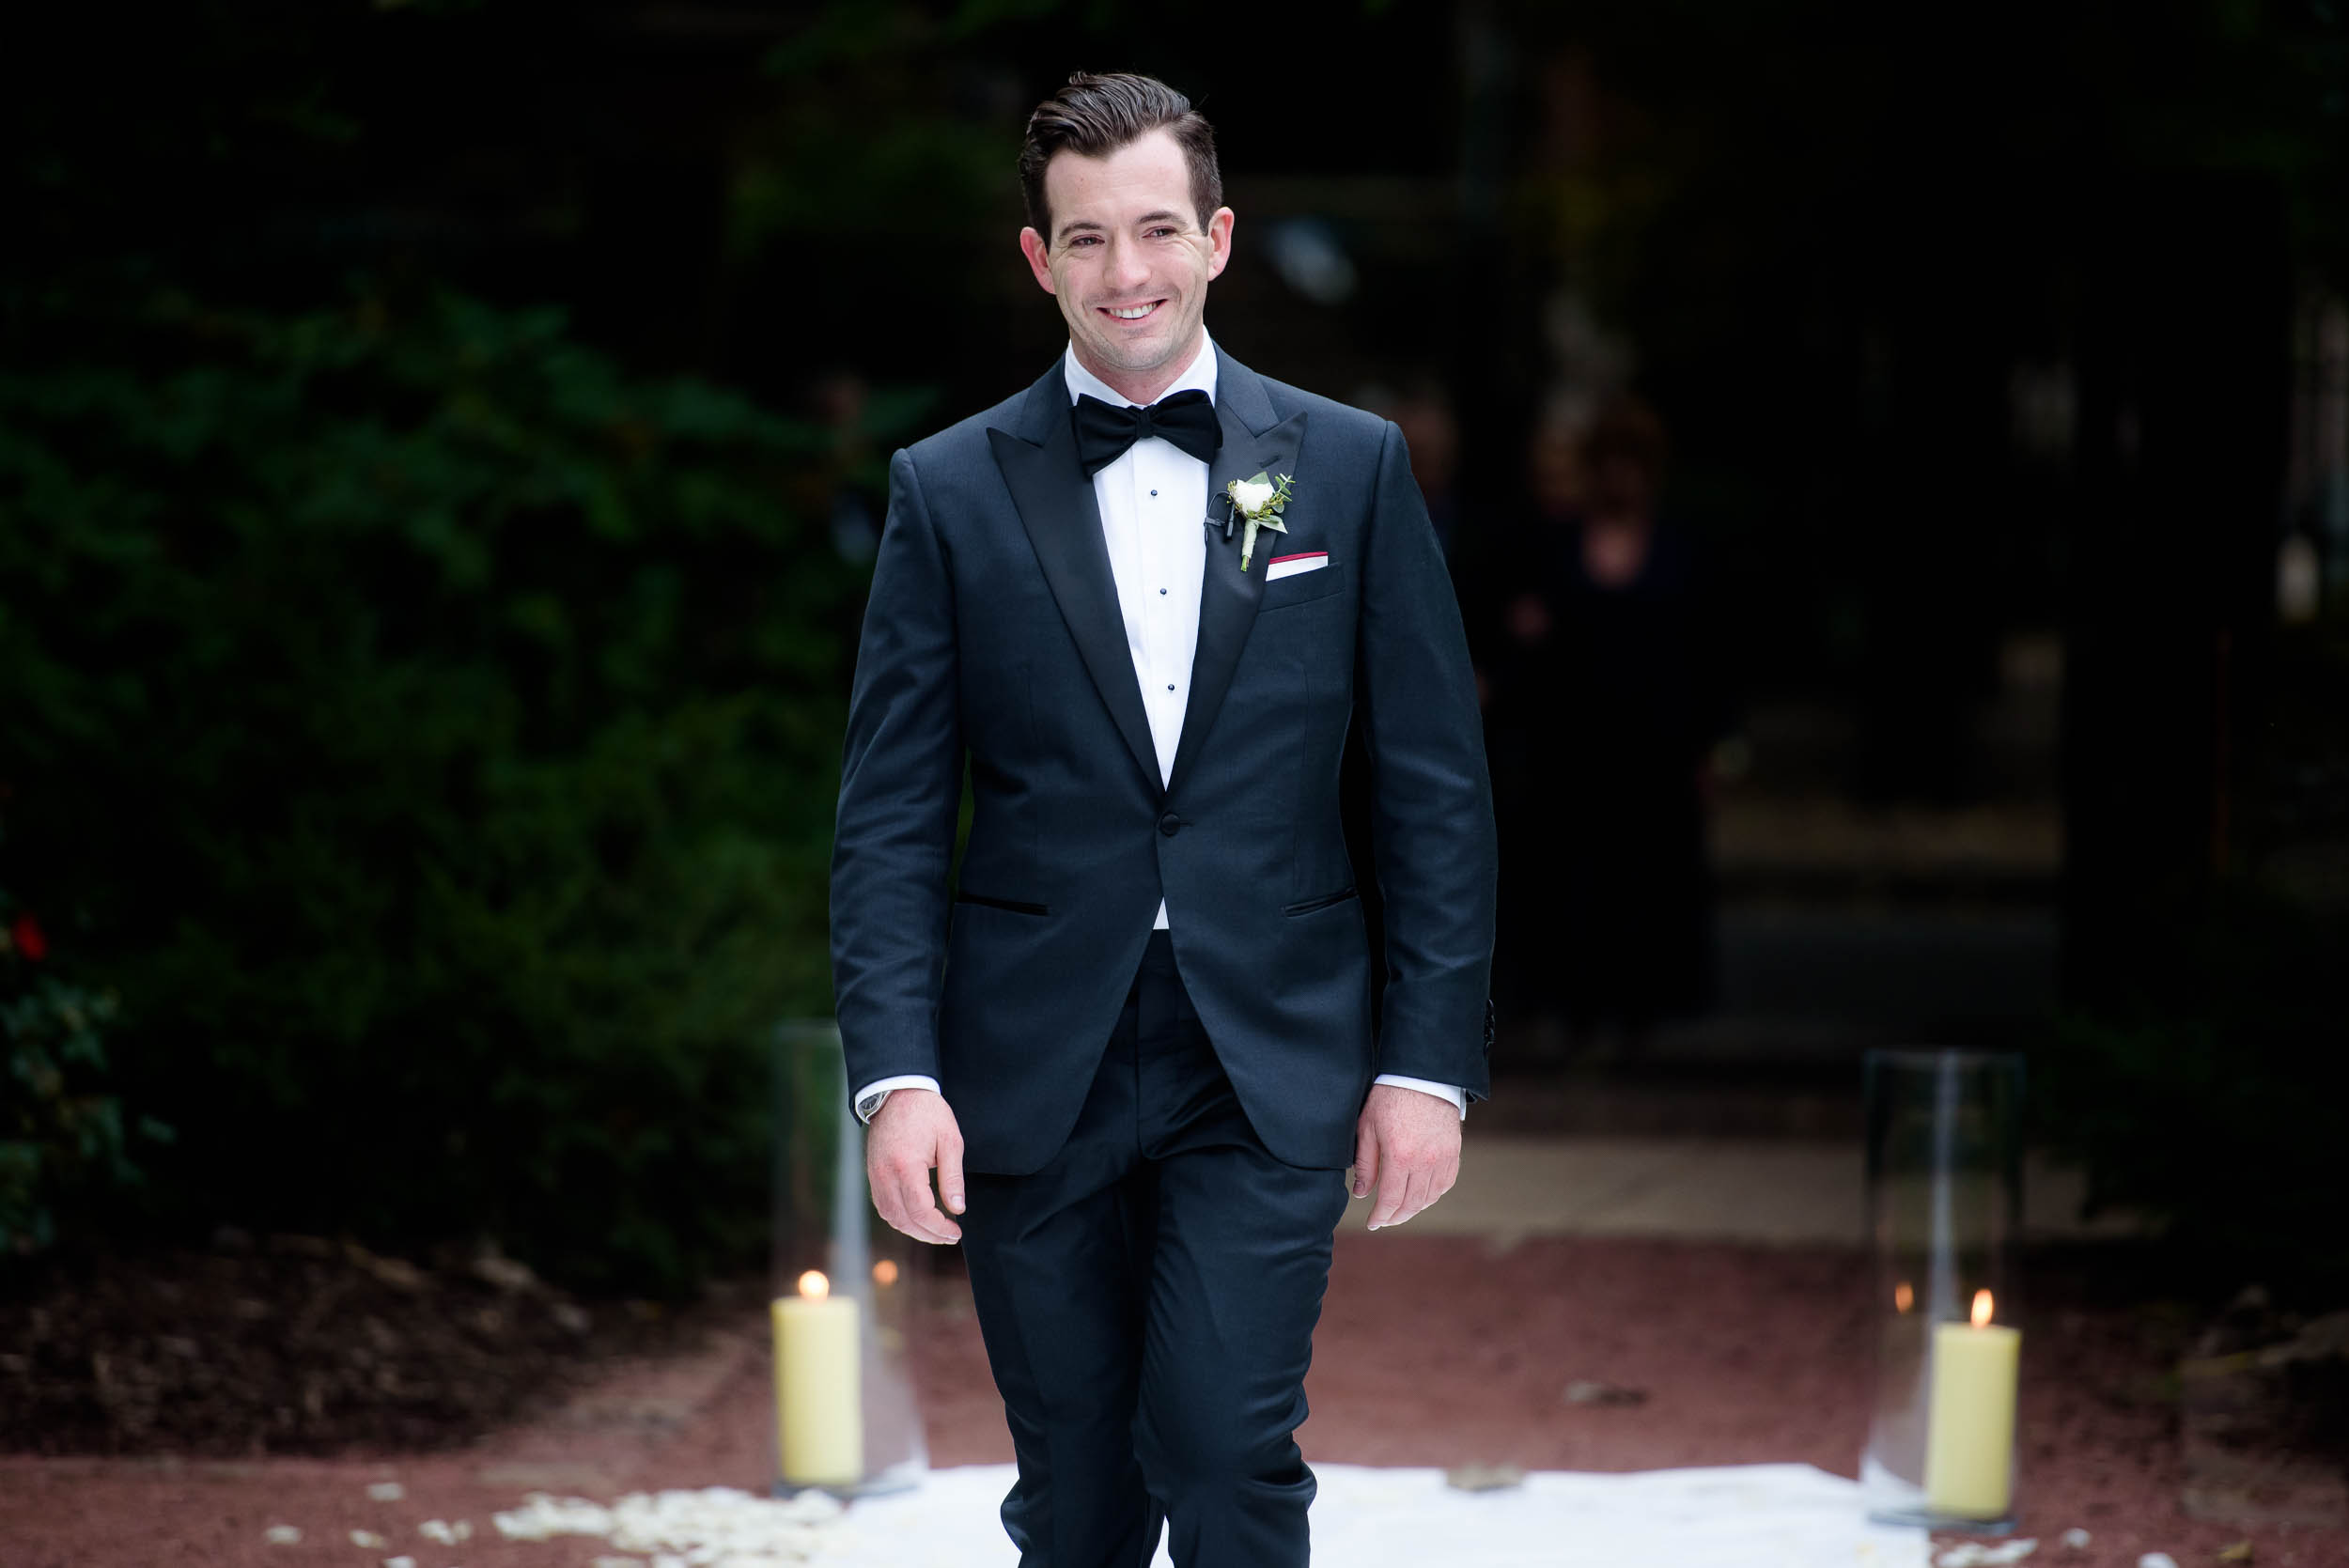 Groom walks down the aisle during a Glessner House Chicago wedding.